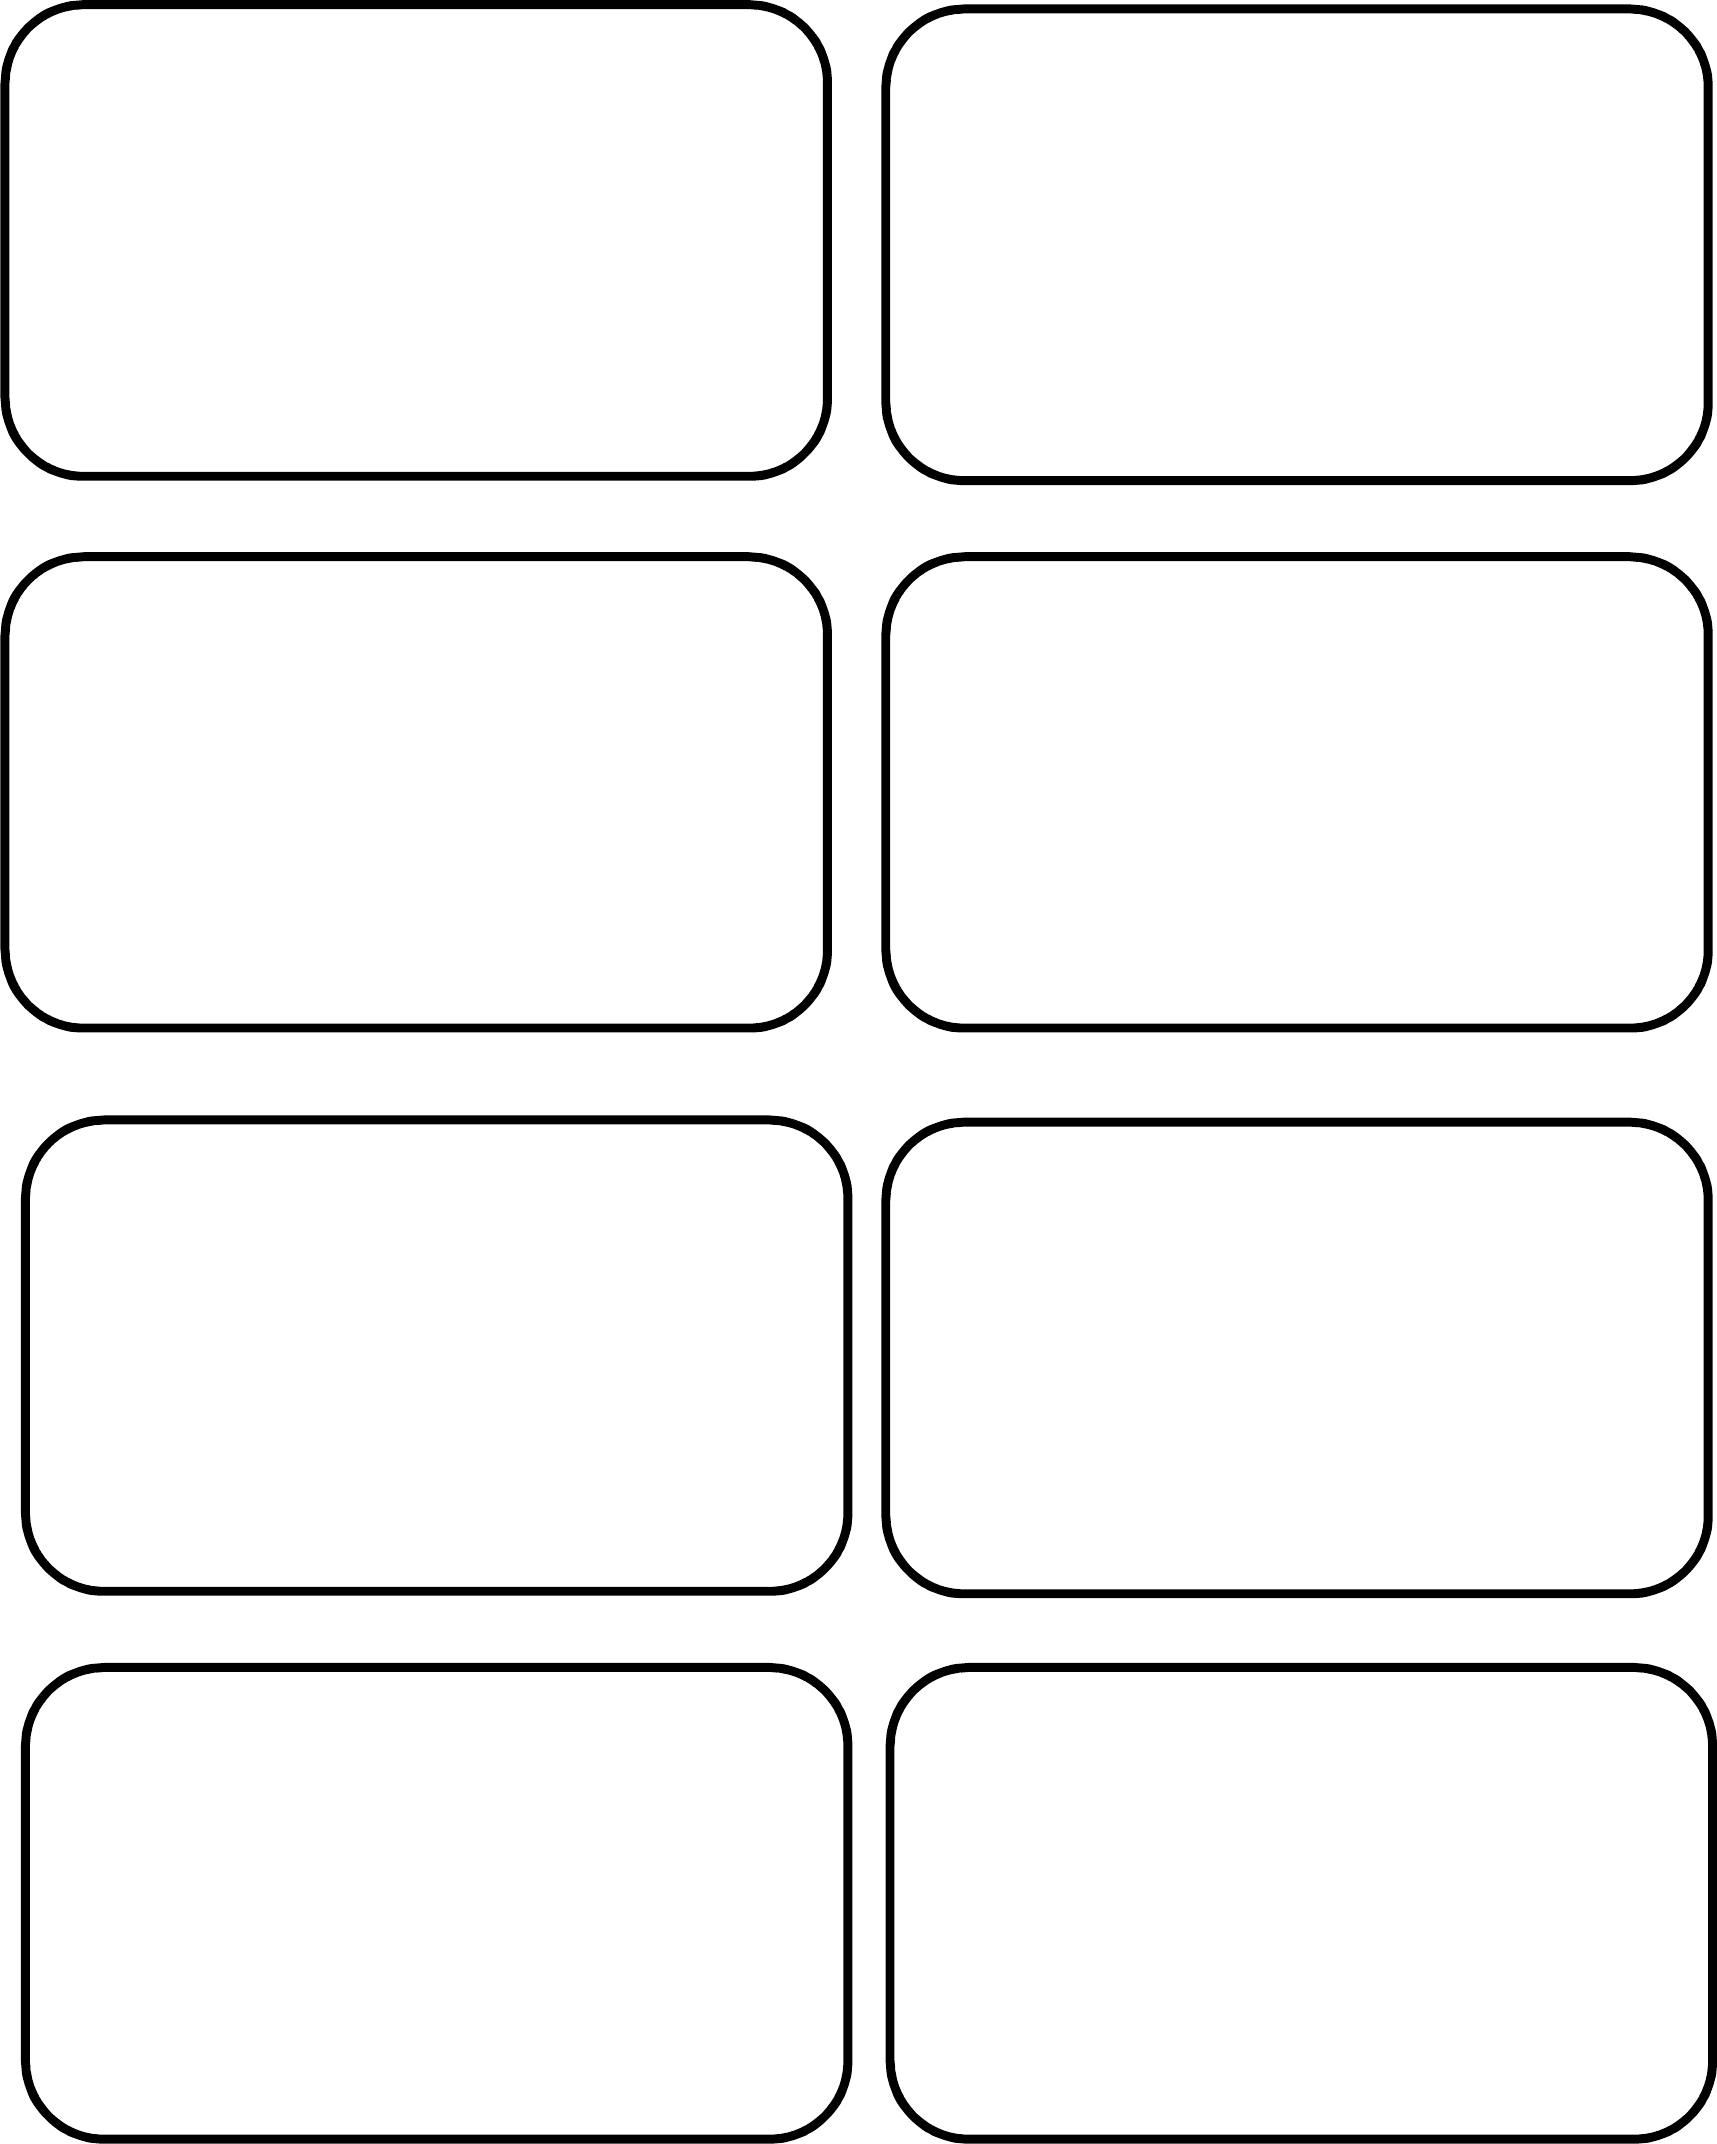 Template Of Luggage Tag Free Download